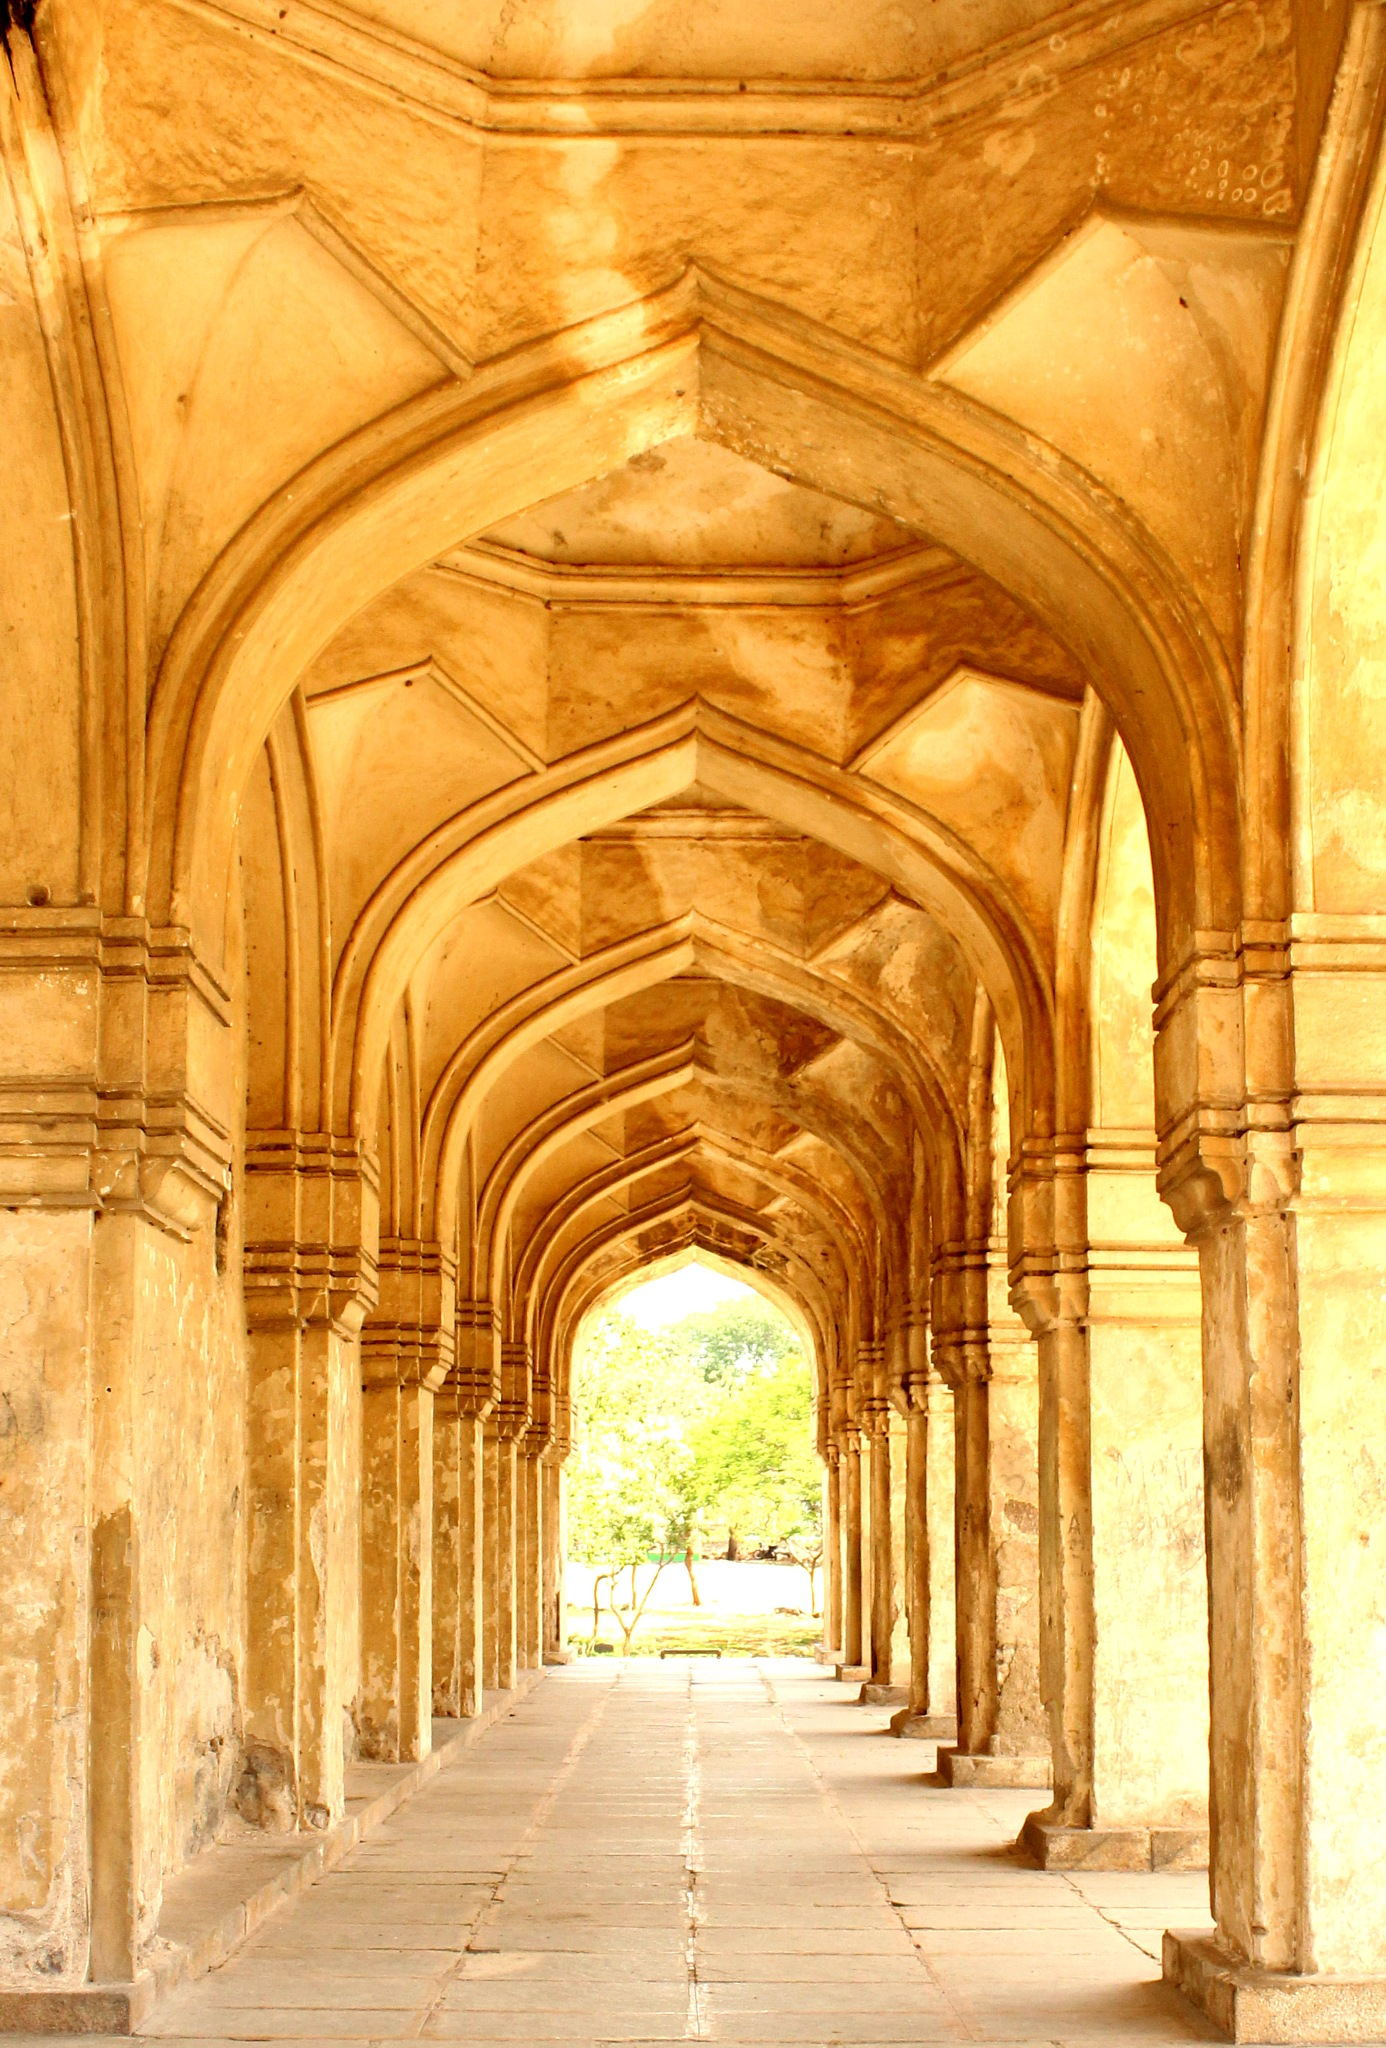 Qutb Shahi Tombs by Maxwel Samael